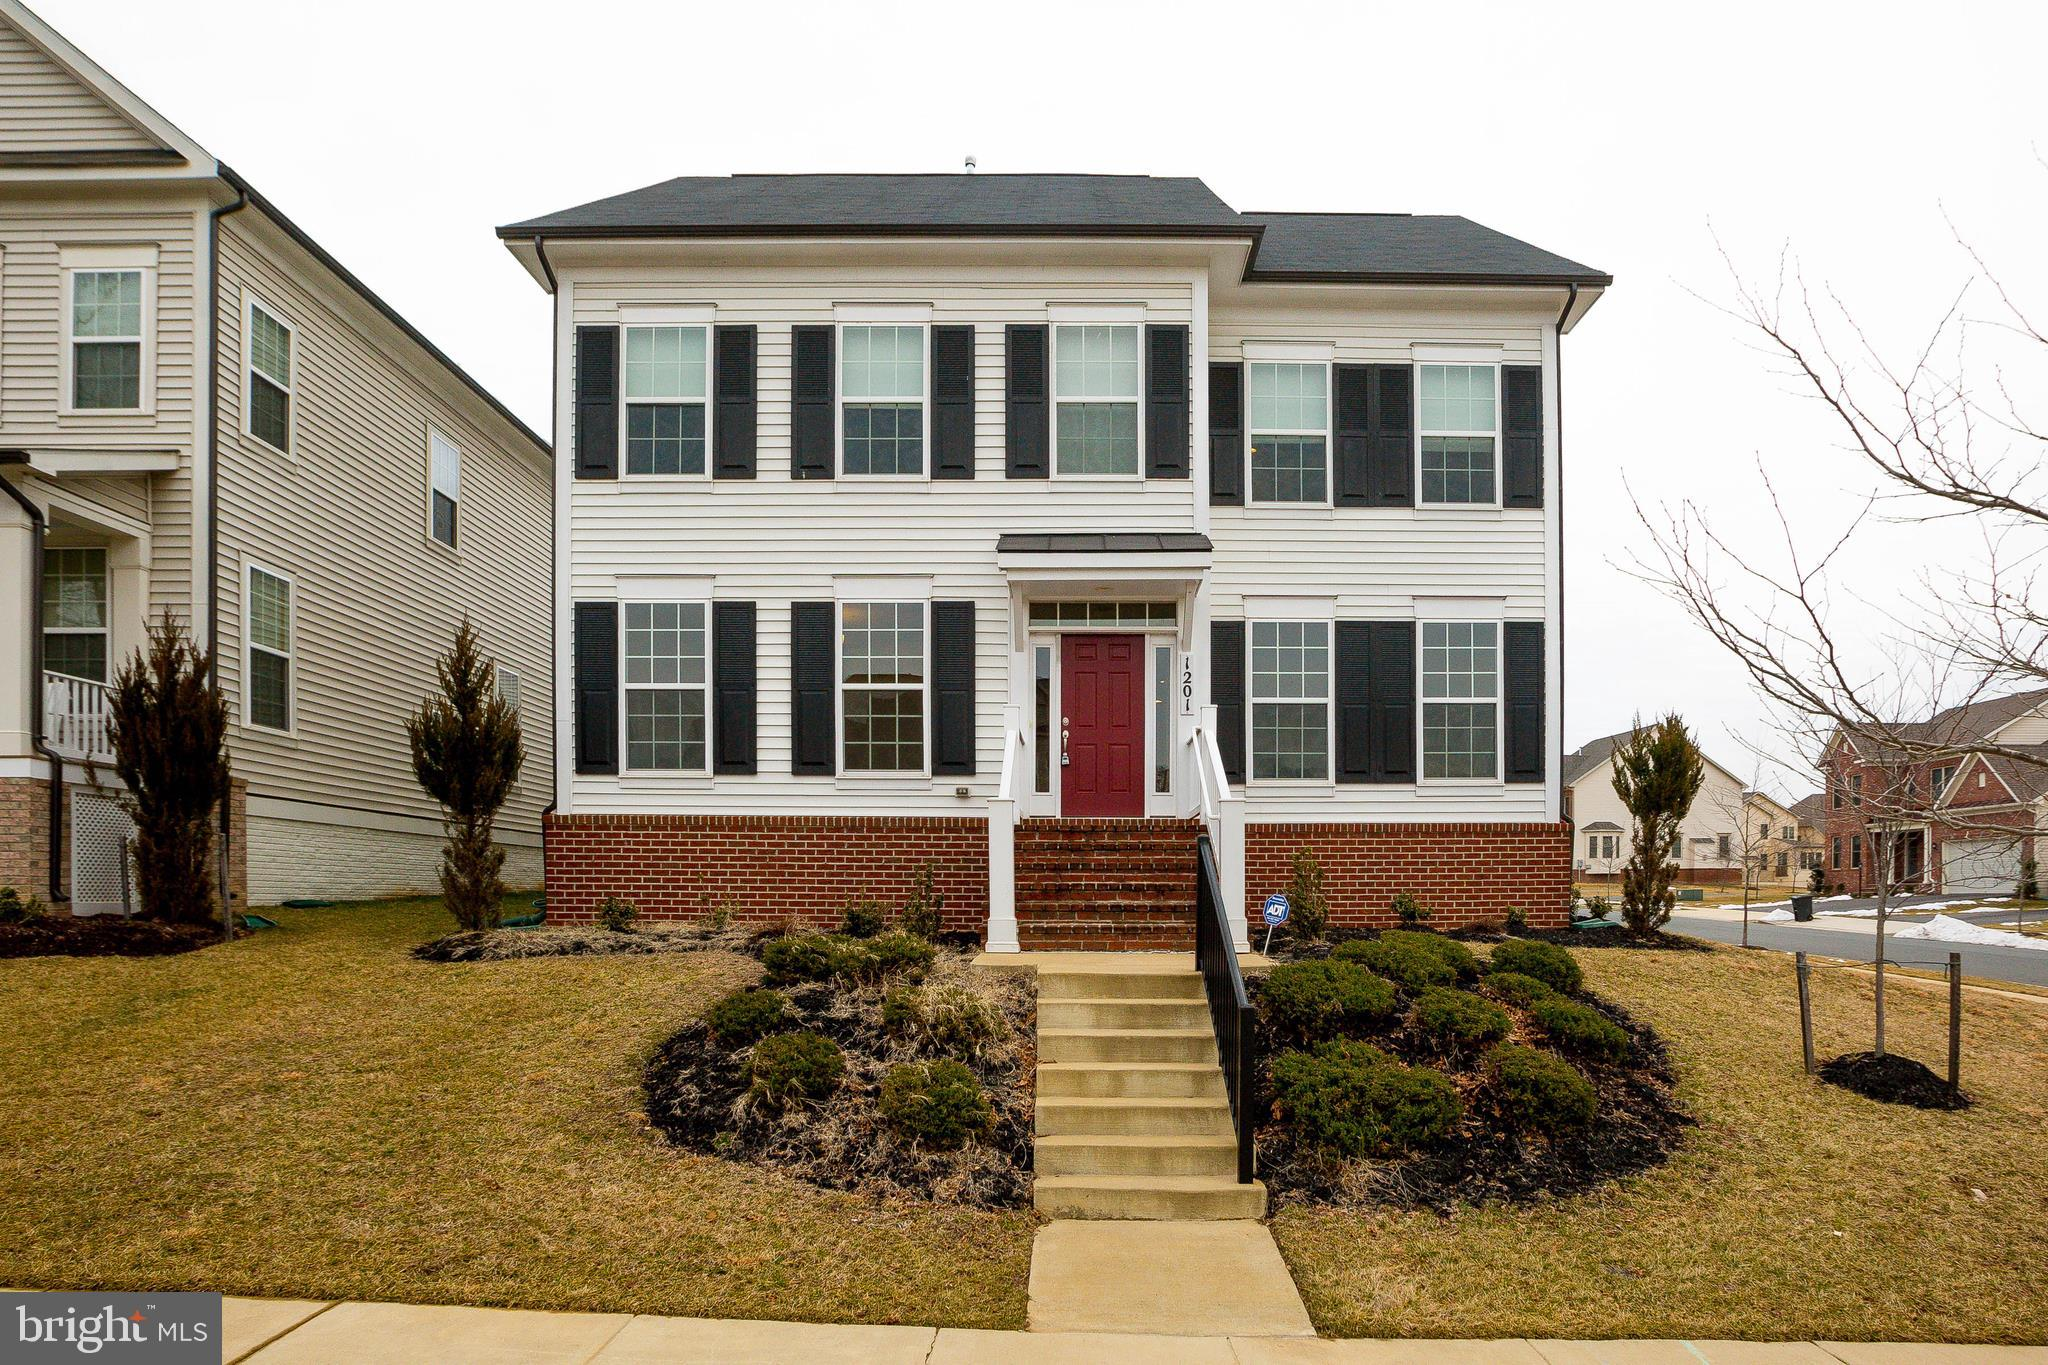 1201 SWEETBAY PLACE, SILVER SPRING, MD 20906